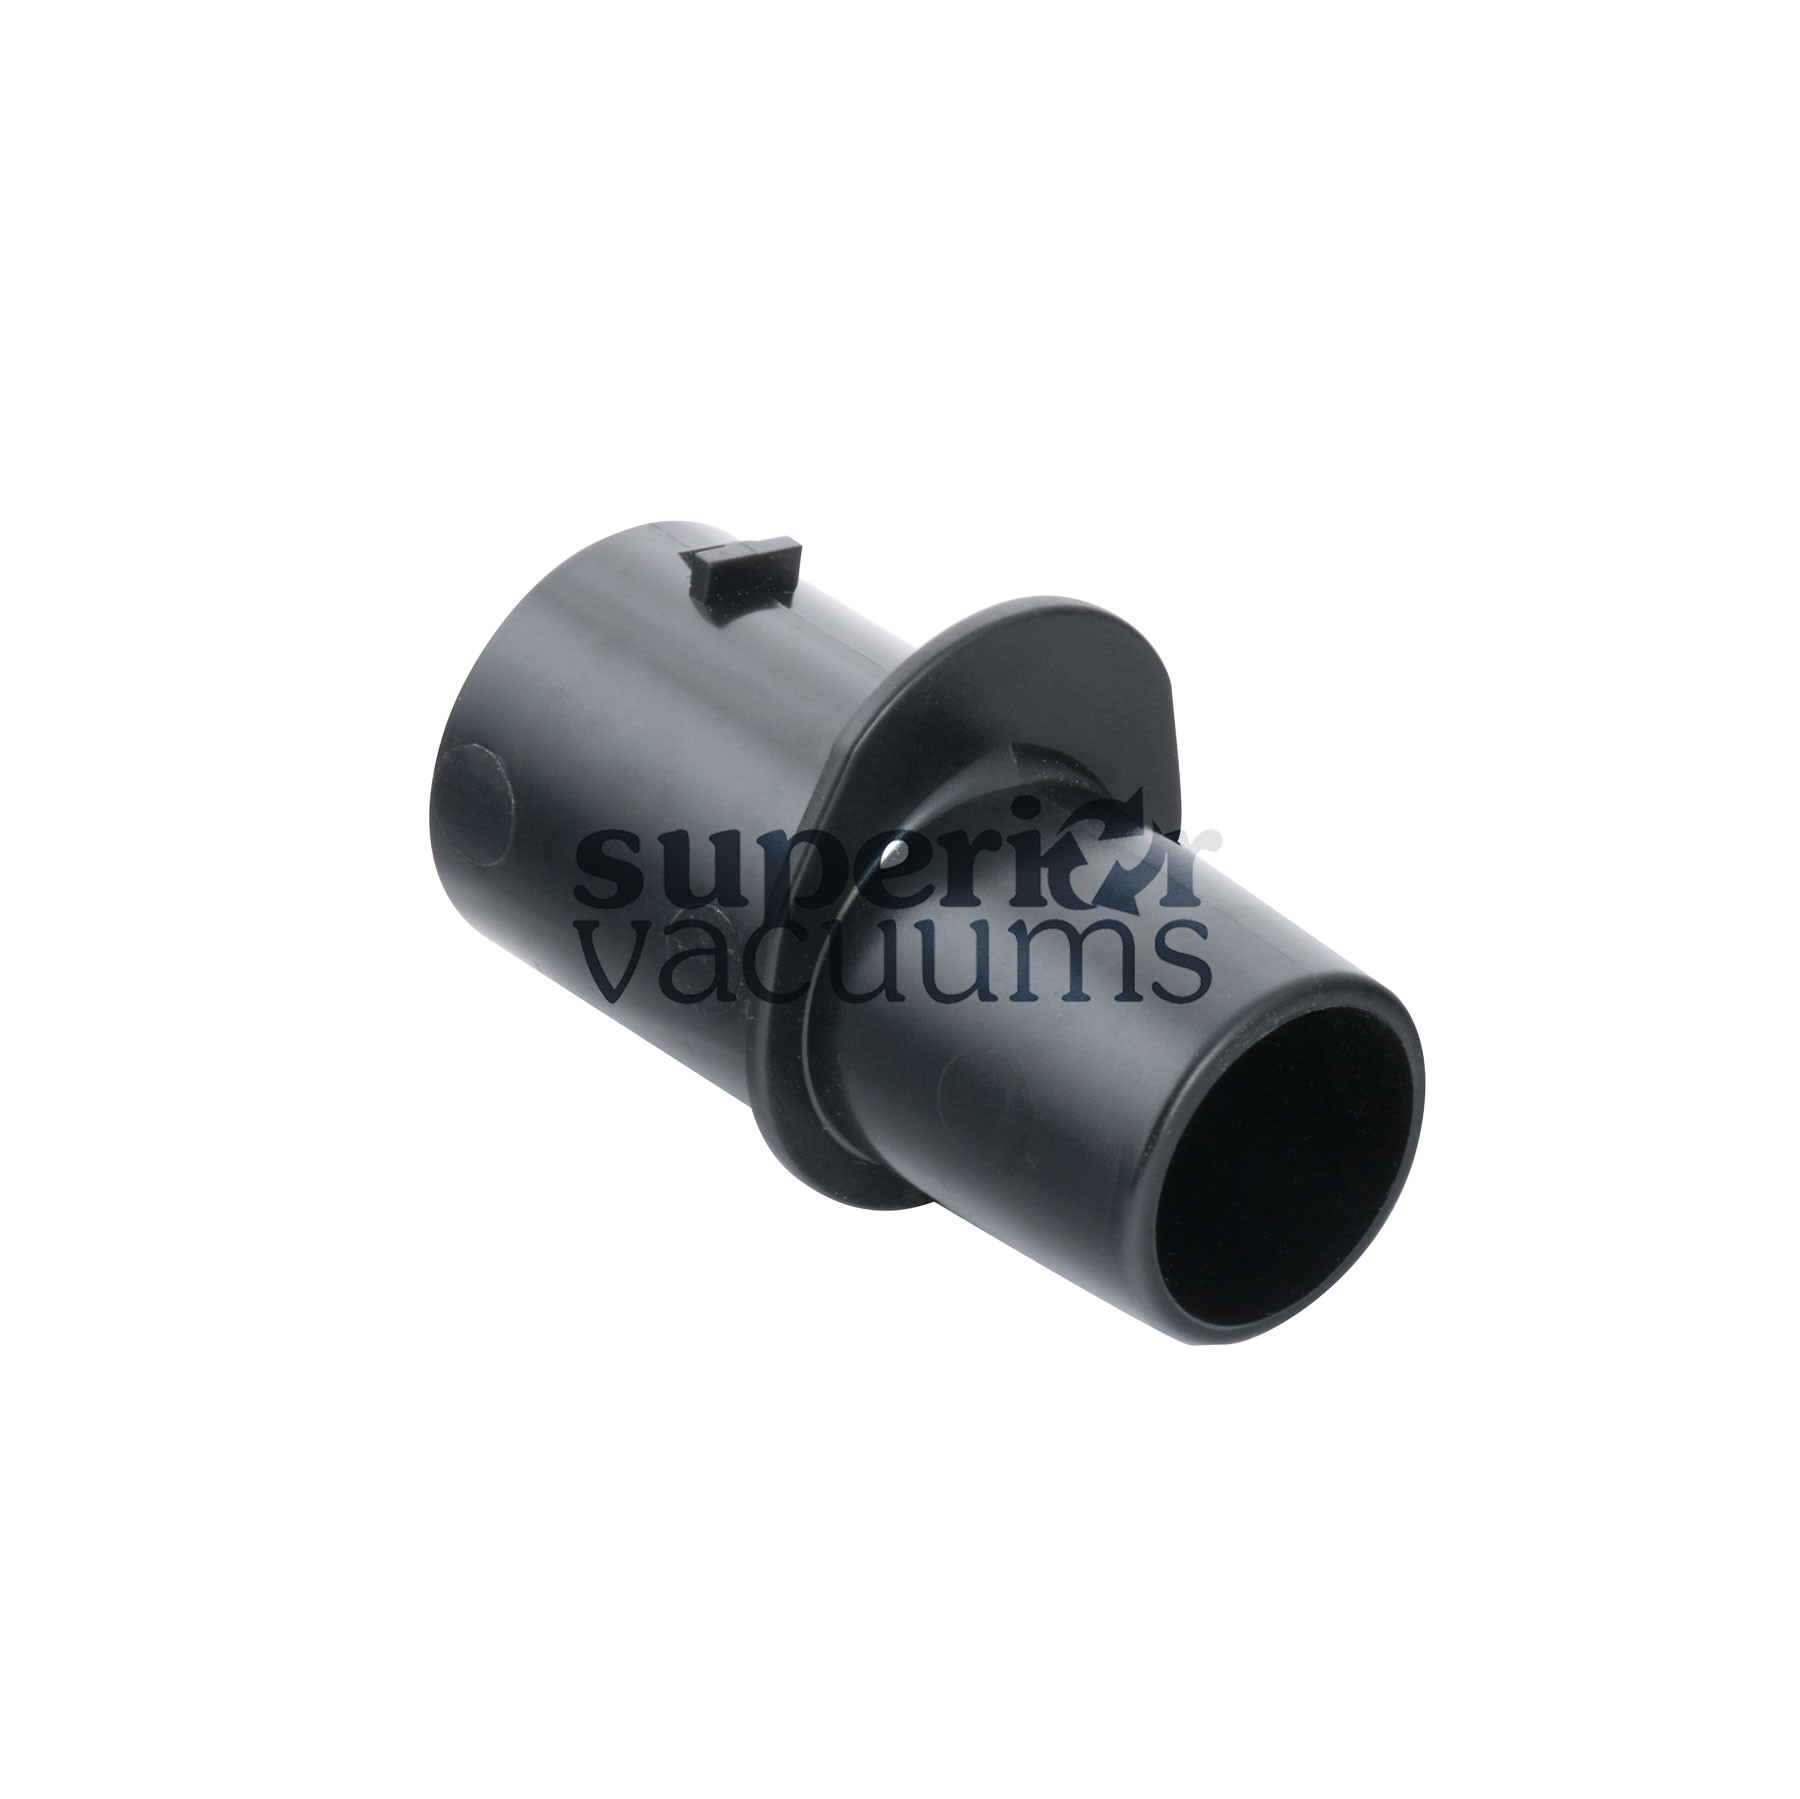 Compact Tool Adapter For Micro Sprayer Fits Exl Mg1 Mg2 Wand/Hose New Style To Fit All Adapter